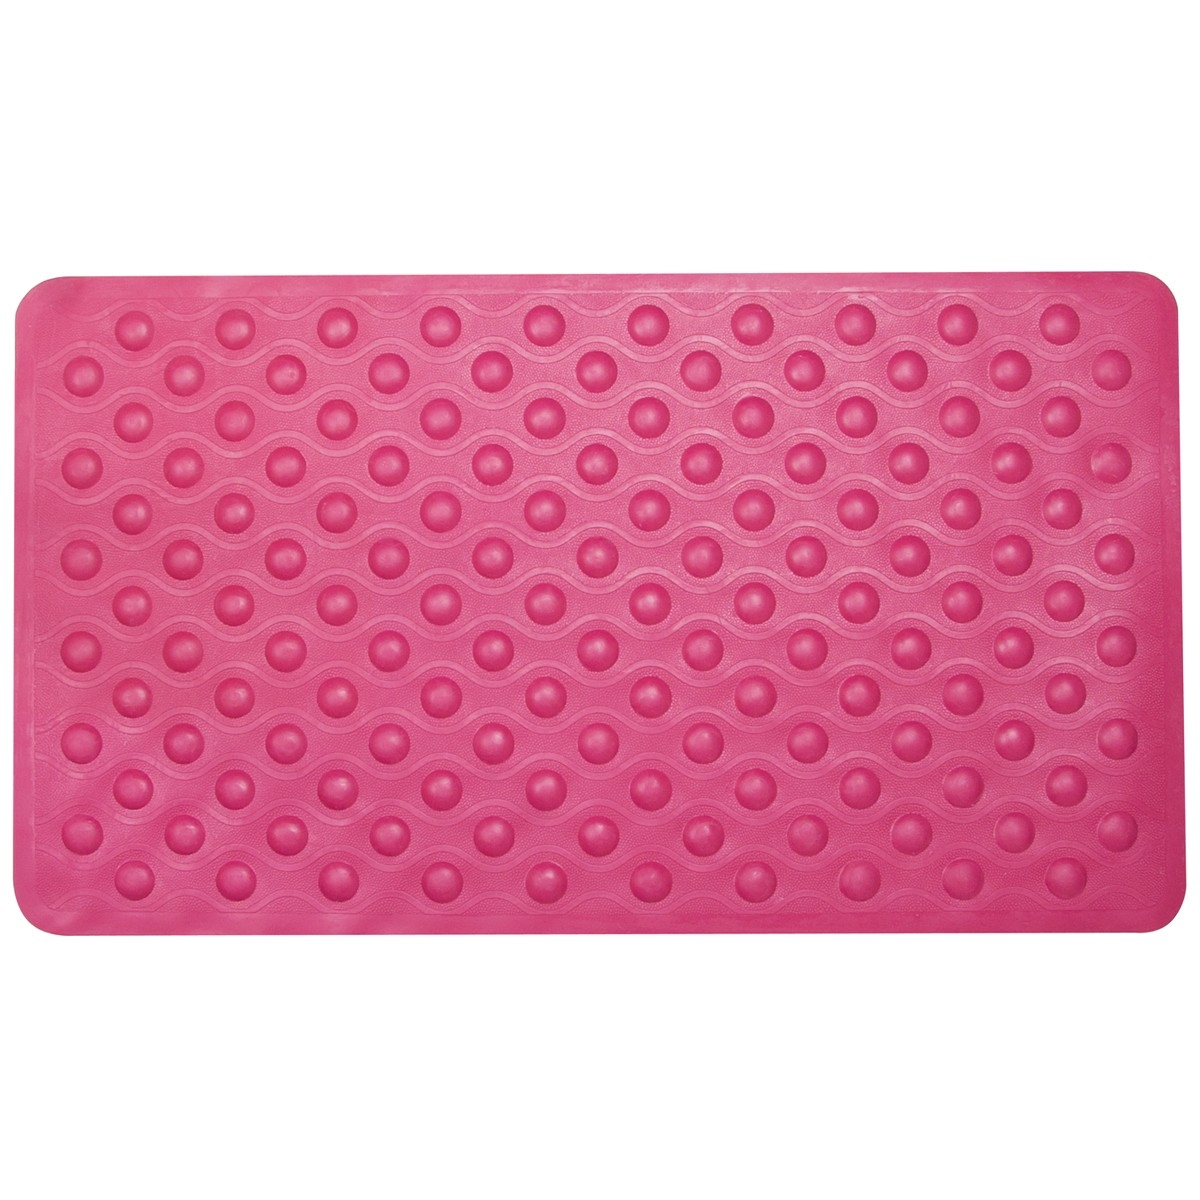 Rubber Bath Mats With Holes1200 X 1200